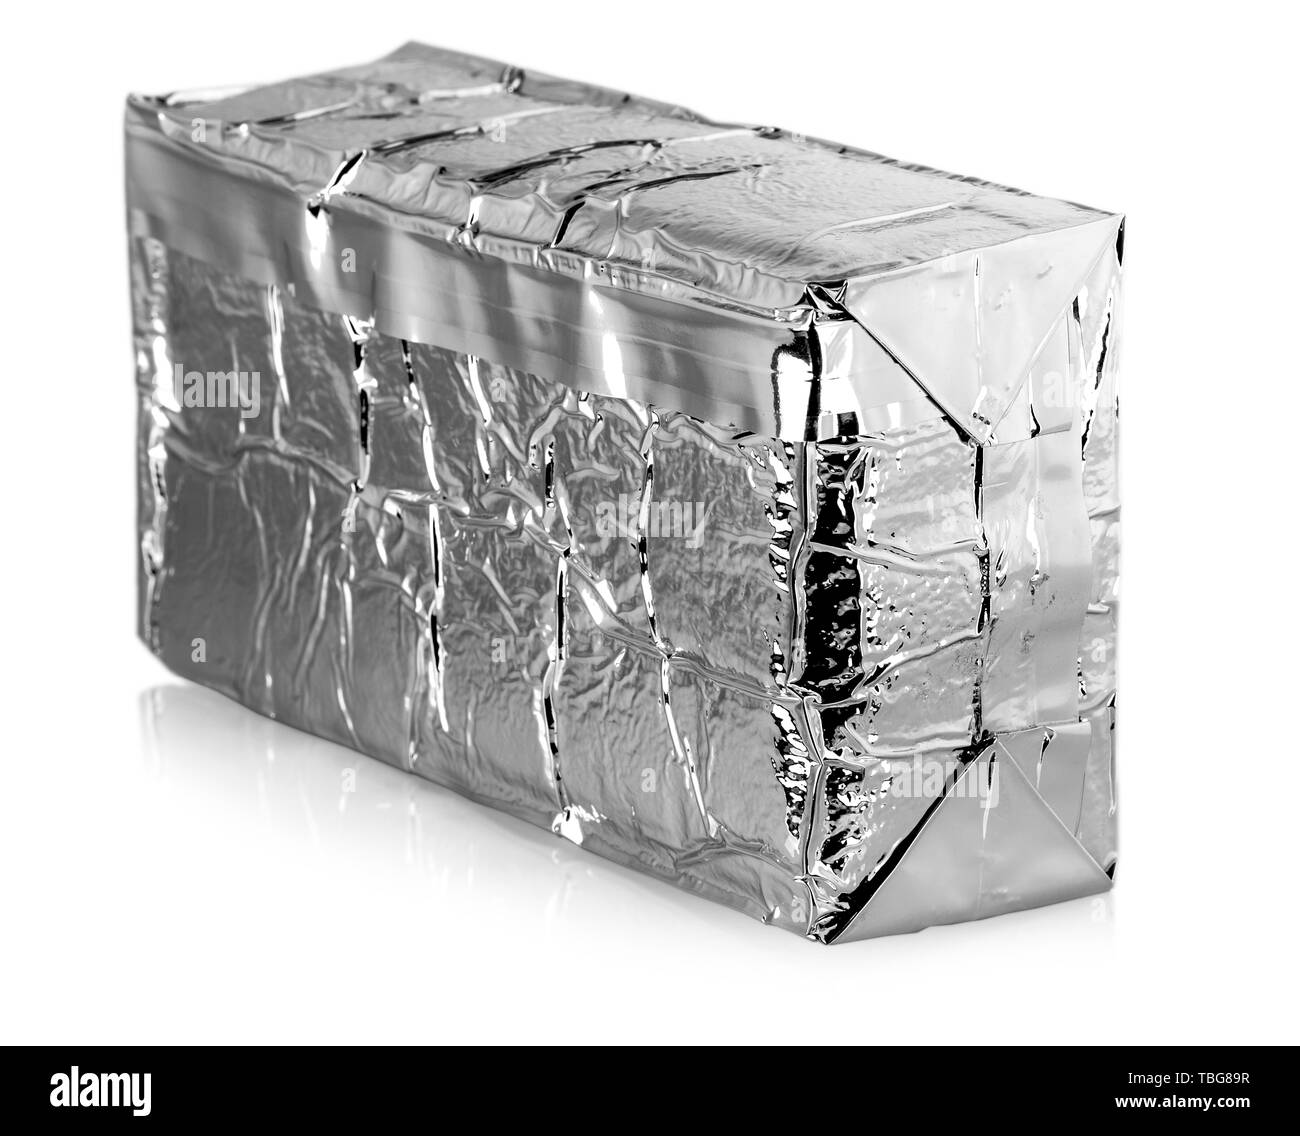 Silver foil food bag isolated on white background - Stock Image